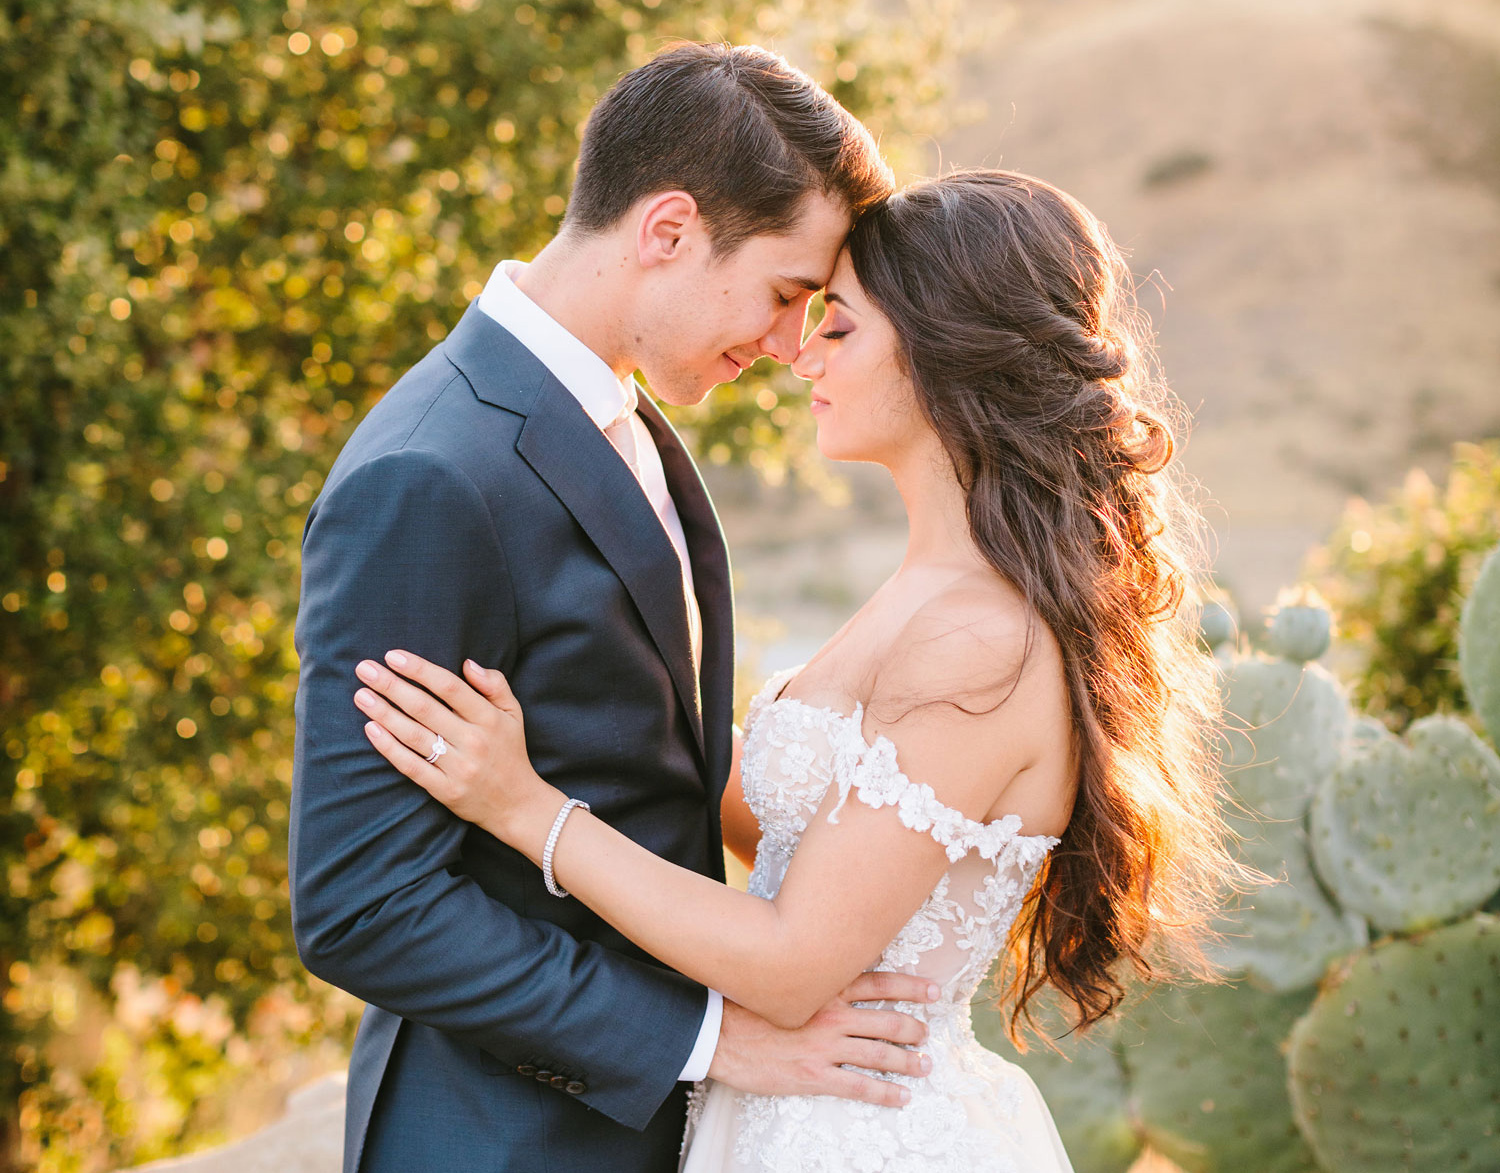 photo of groom in navy suit and bride in lace off-the-shoulder dress holding each other while foreheads touch